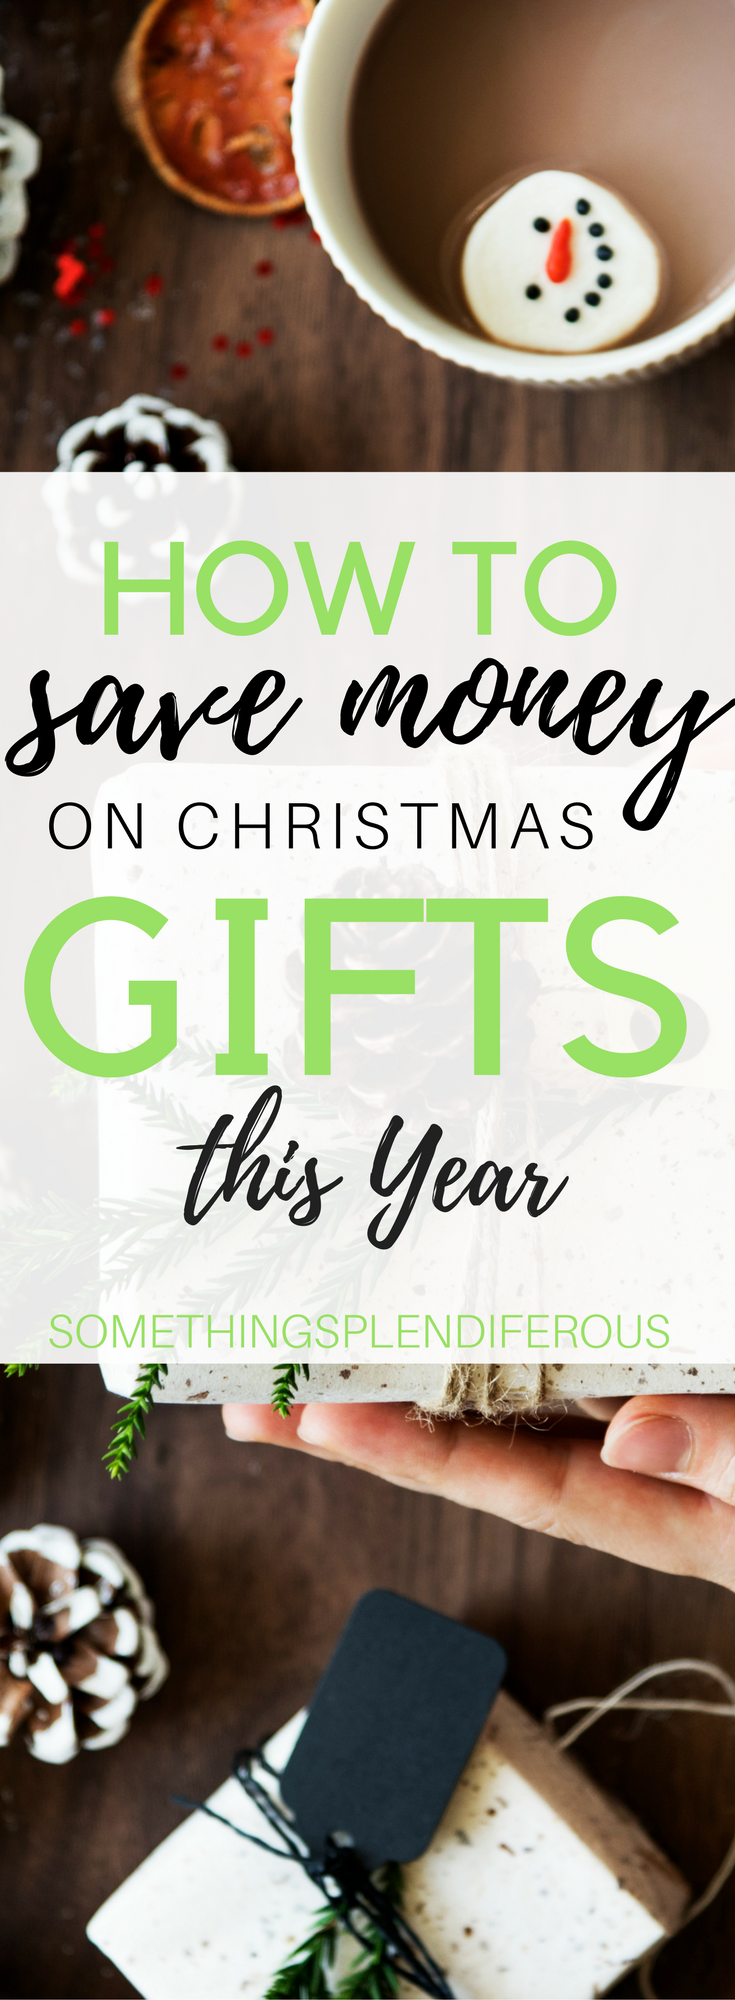 www.somethingsplendiferous.com how to save money on Christmas gifts this year